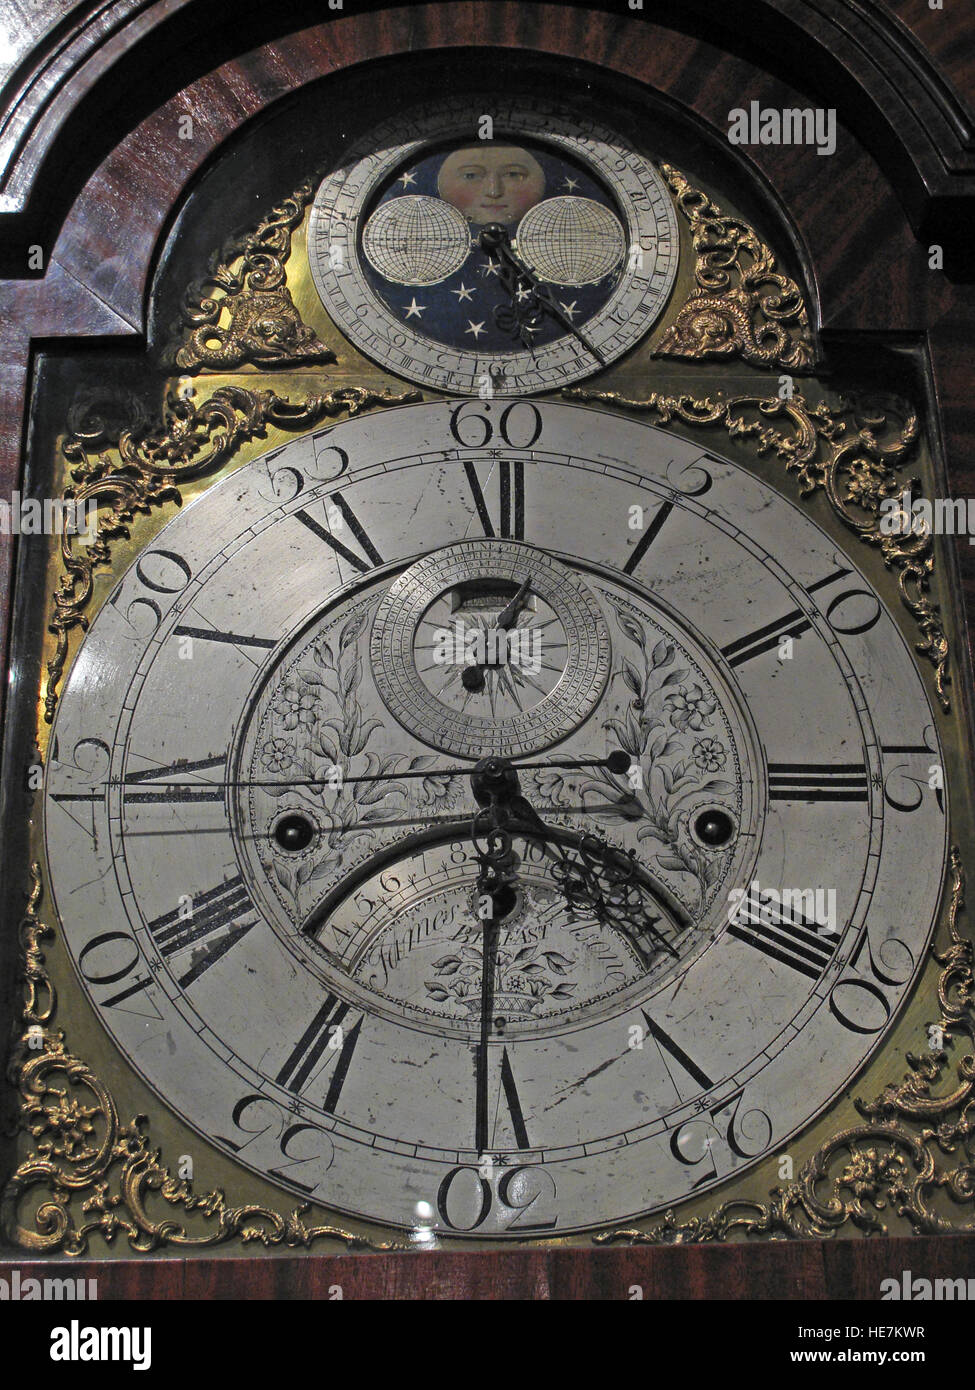 clocks,movement,hands,face,manufacture,manufactured,built,wood,indoor,machine,longcase,long,case,clock,tall-case,tall,case,floor clock,floor,pendulum clock,pendulum,time,keeping,timekeeping,timing,Irish,antique,Grandfather,Northern Ireland,GoTonySmith,@HotpixUK,Tony,Smith,UK,GB,Great,Britain,United,Kingdom,Irish,British,Ireland,problem,with,problem with,issue with,NI,Northern,Northern Ireland,Belfast,City,Centre,Art,Artists,the,troubles,The Troubles,Good Friday Agreement,Peace,honour,painting,wall,walls,tribute,republicanism,Fight,Justice,West,Beal,feirste,martyrs,social,tour,tourism,tourists,urban,six,counties,6,backdrop,county,Antrim,Buy Pictures of,Buy Images Of,Images of,Stock Images,Tony Smith,United Kingdom,Great Britain,British Isles